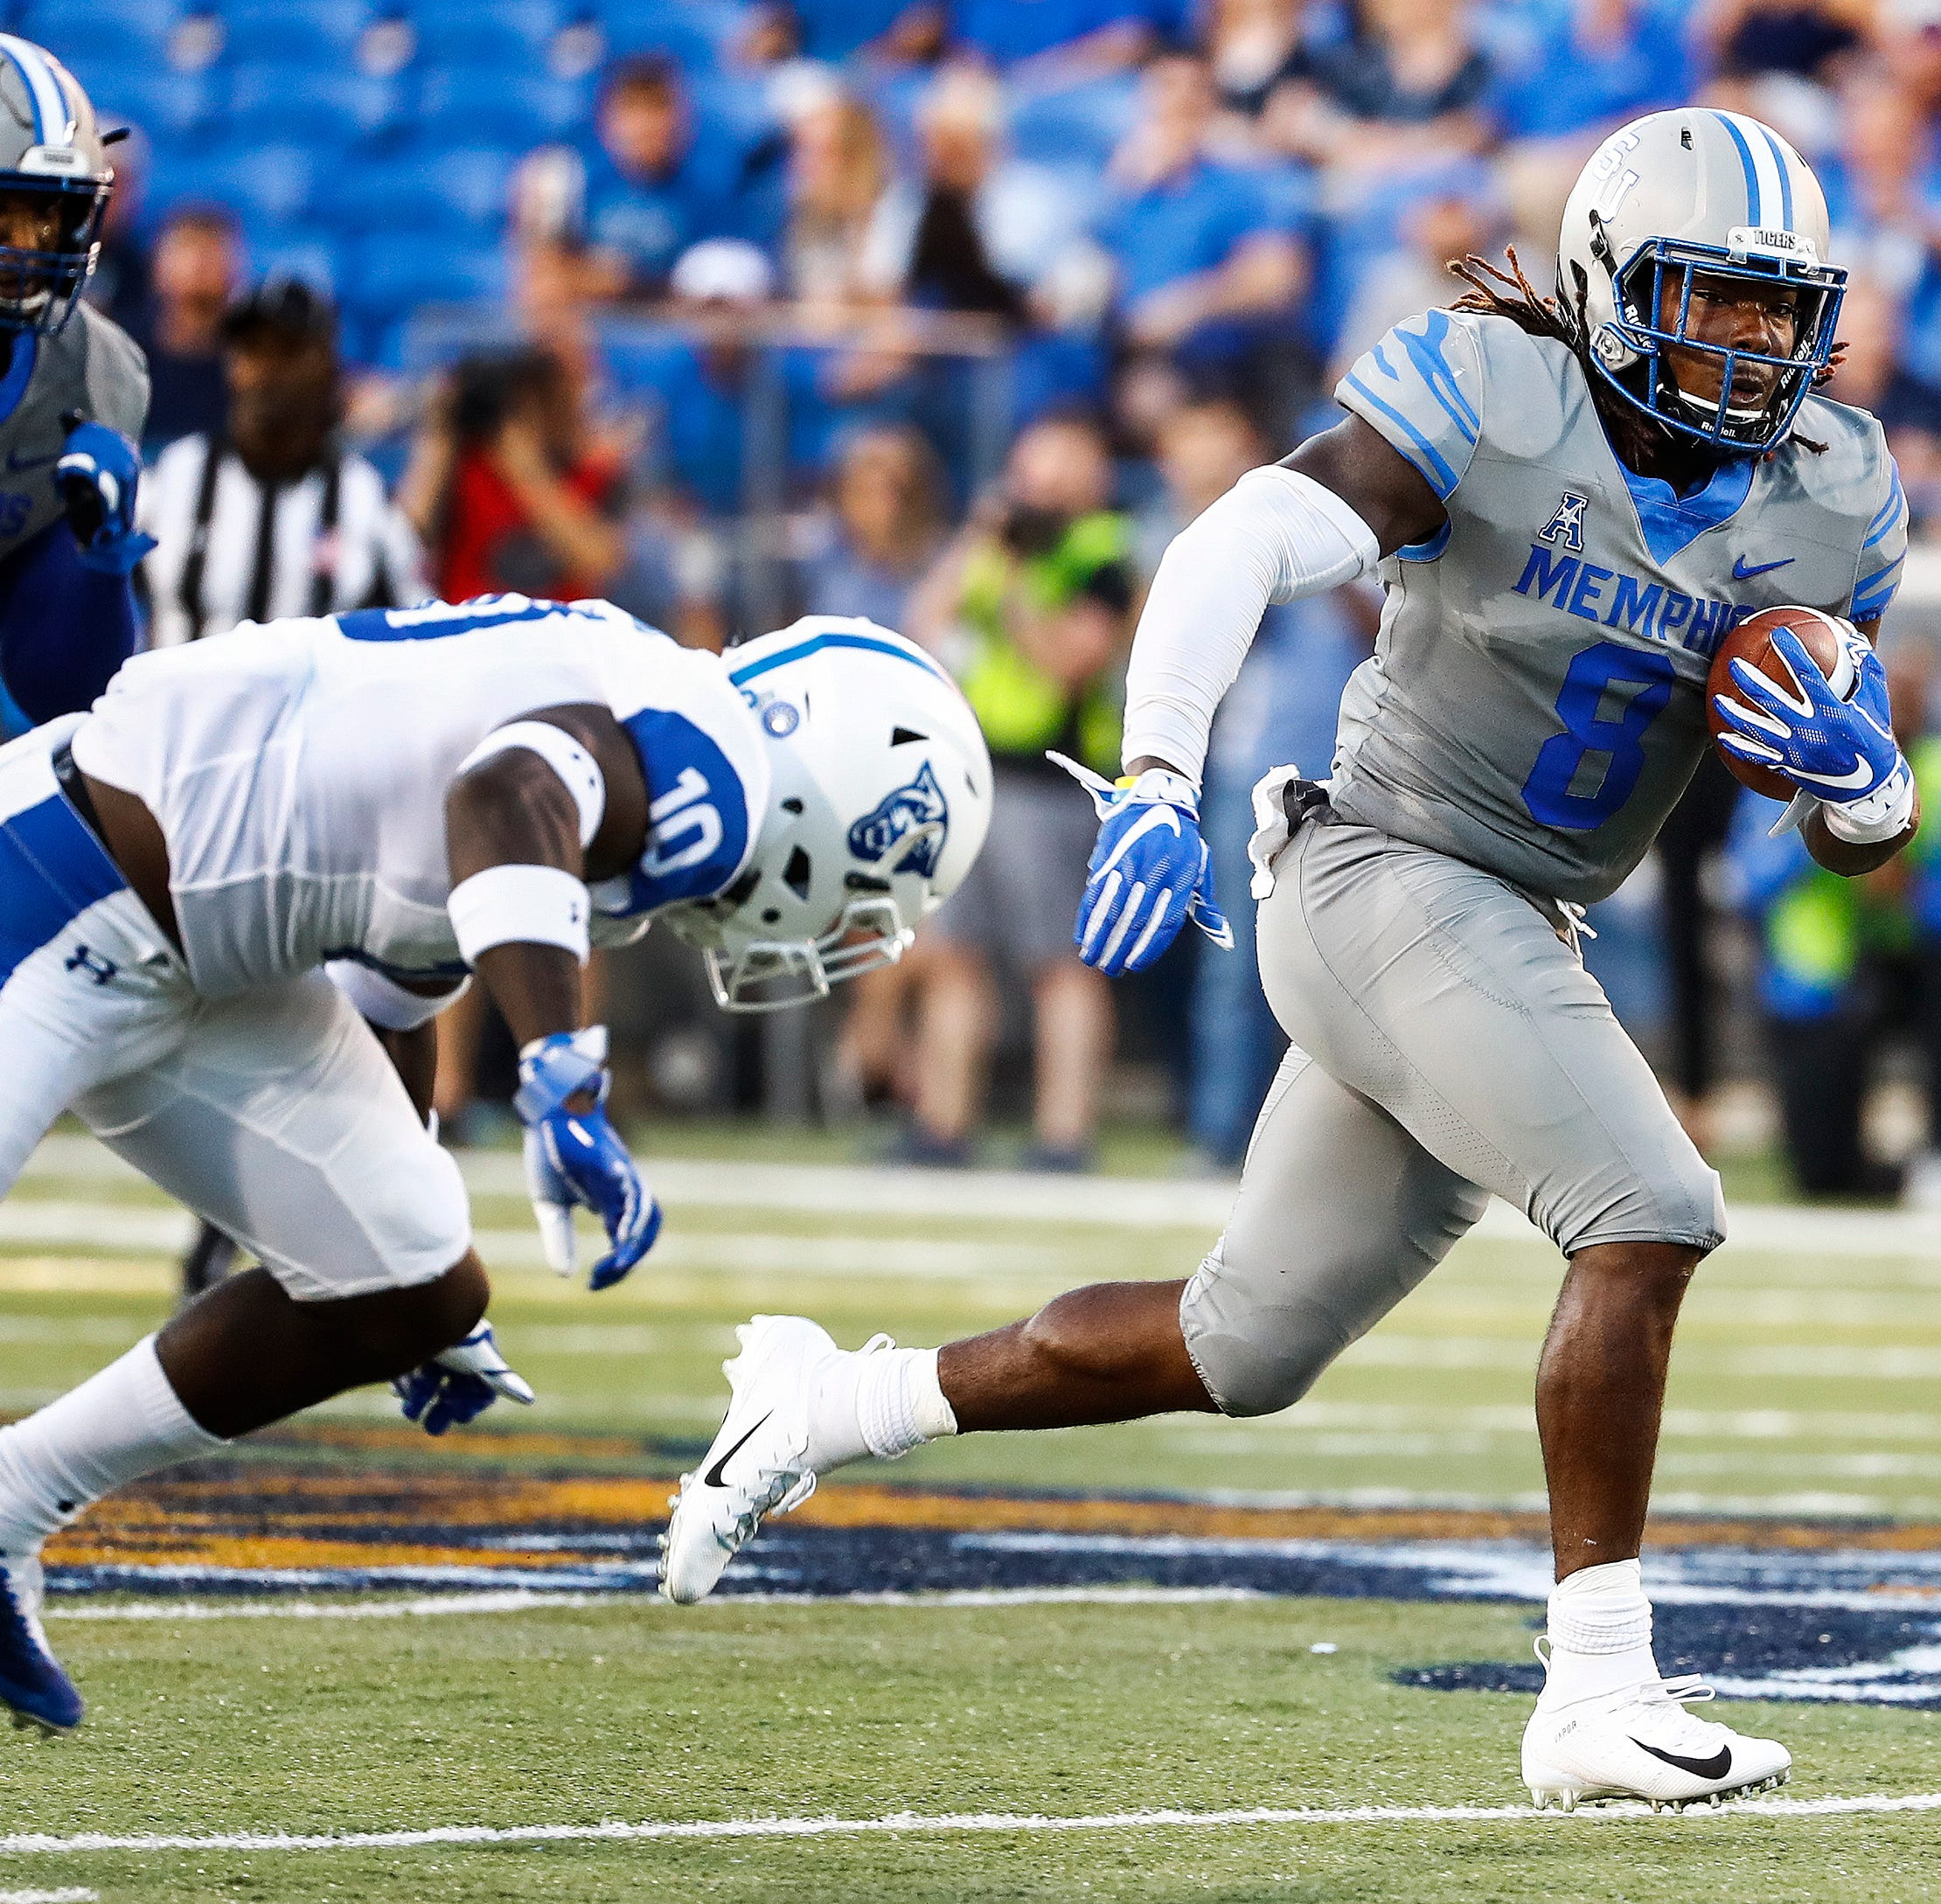 Memphis football adds wrinkle to dynamic offense with wildcat formation